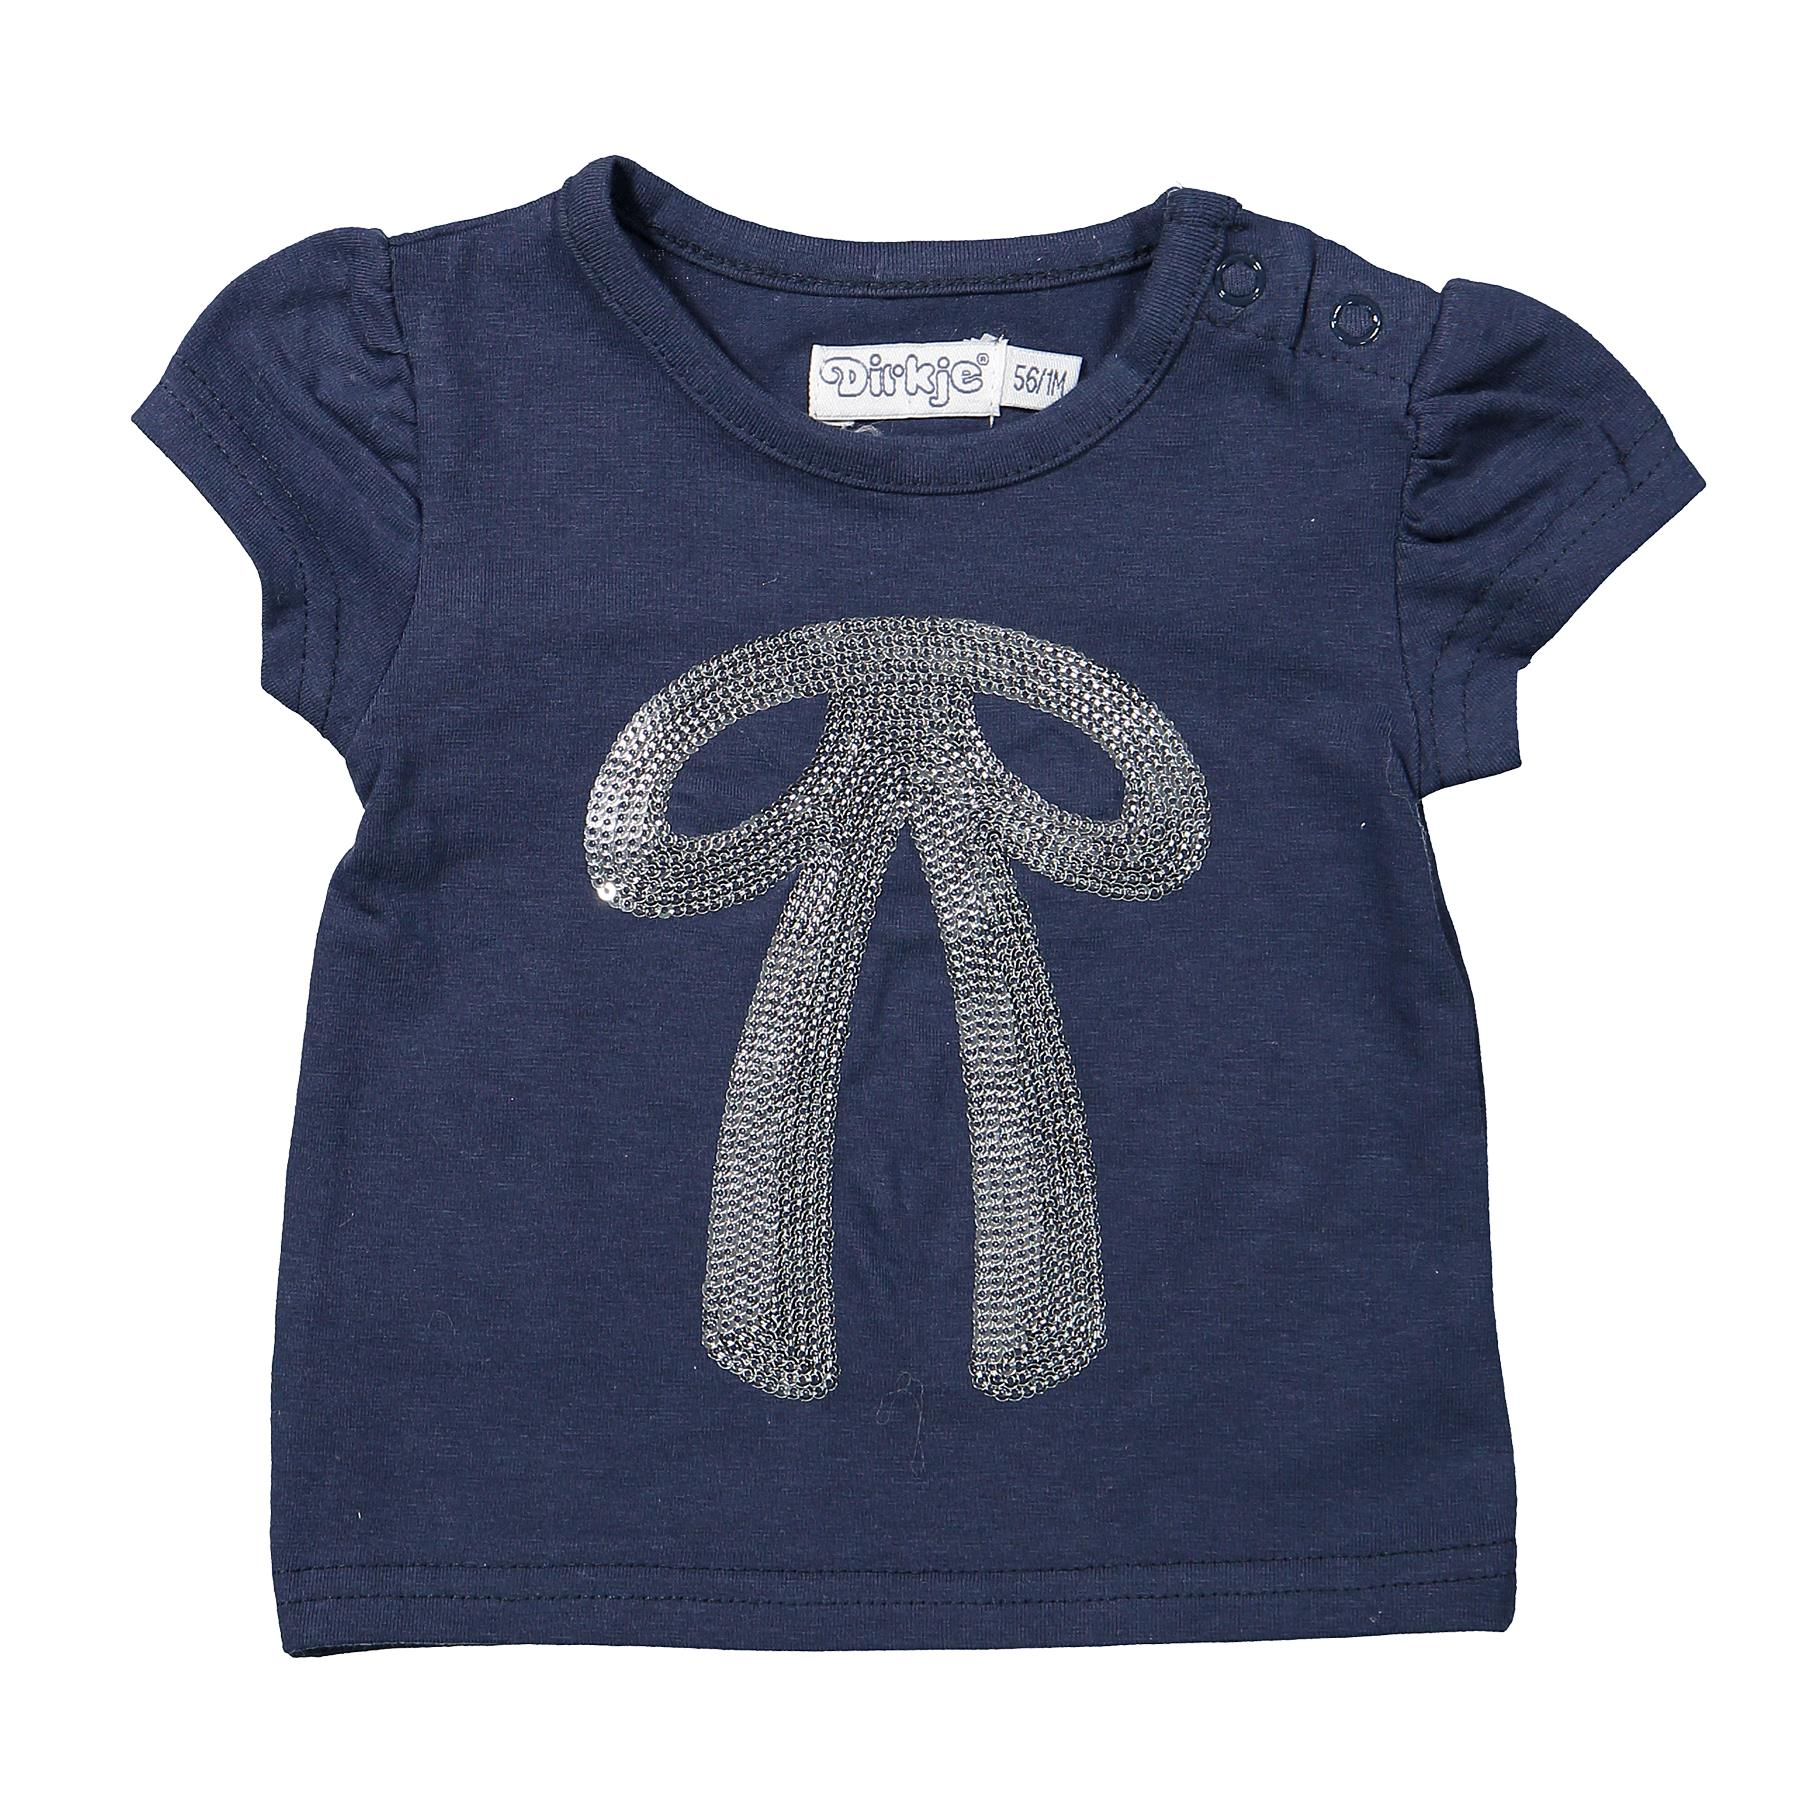 DIRKJE Tričko A-SO FRESH BOWTIQUE vel. 62 Navy